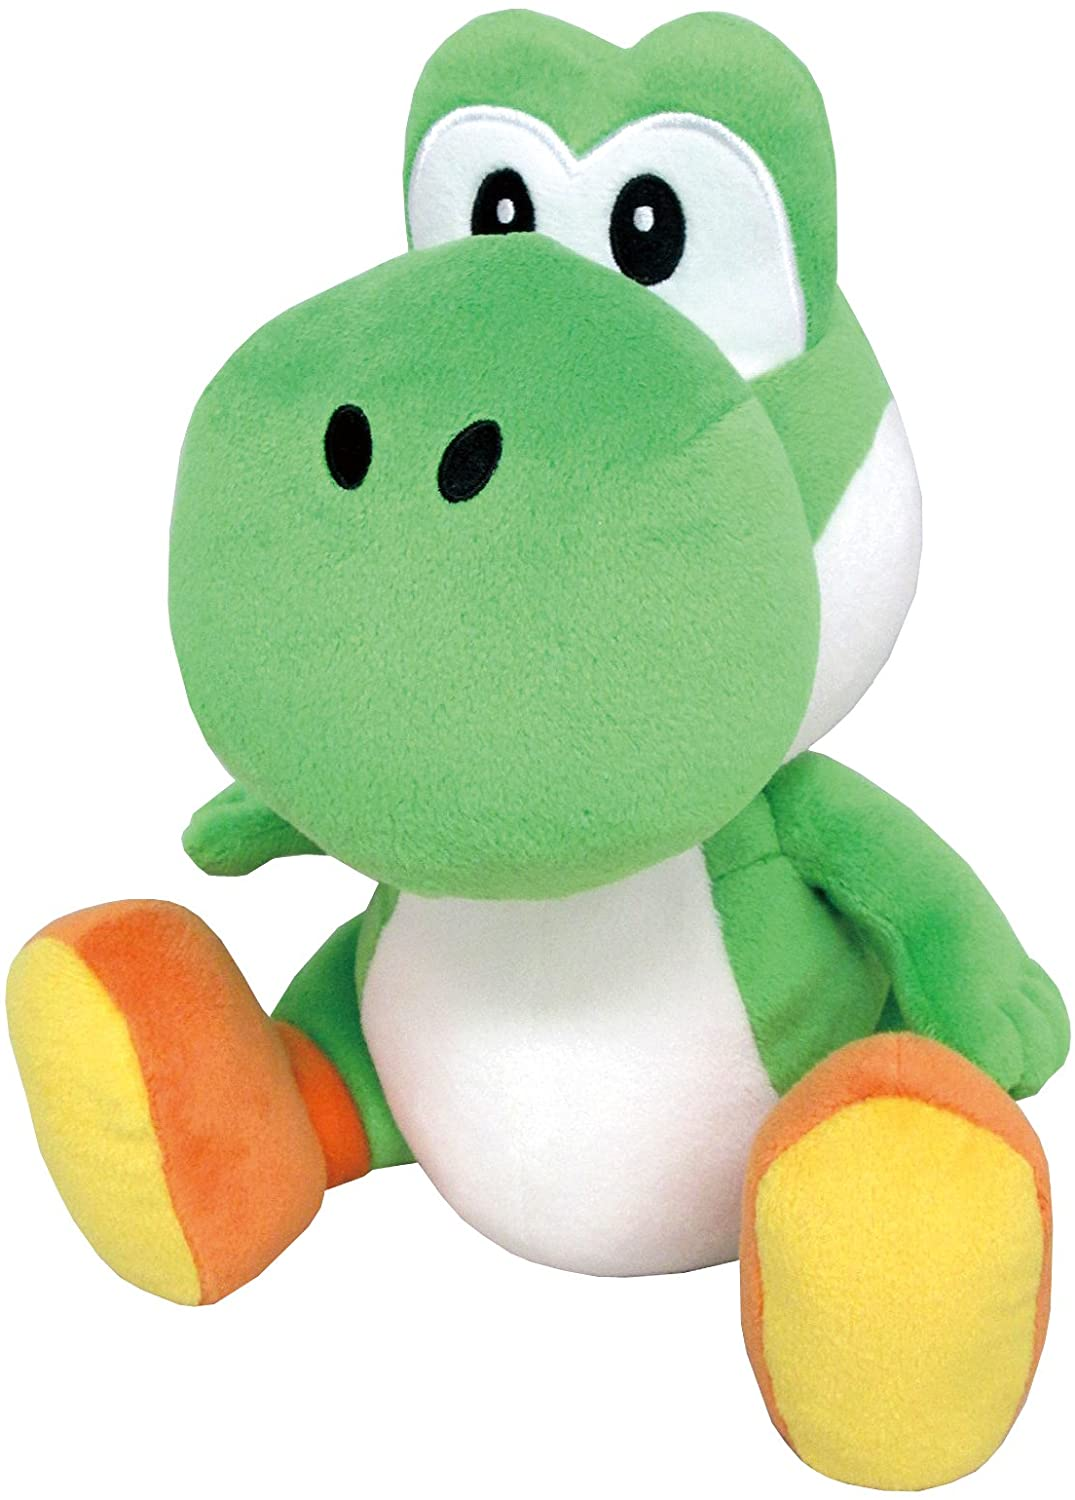 LITTLE BUDDY TOYS PLUSH YOSHI 11'' GREEN (EXCLUSIVE)